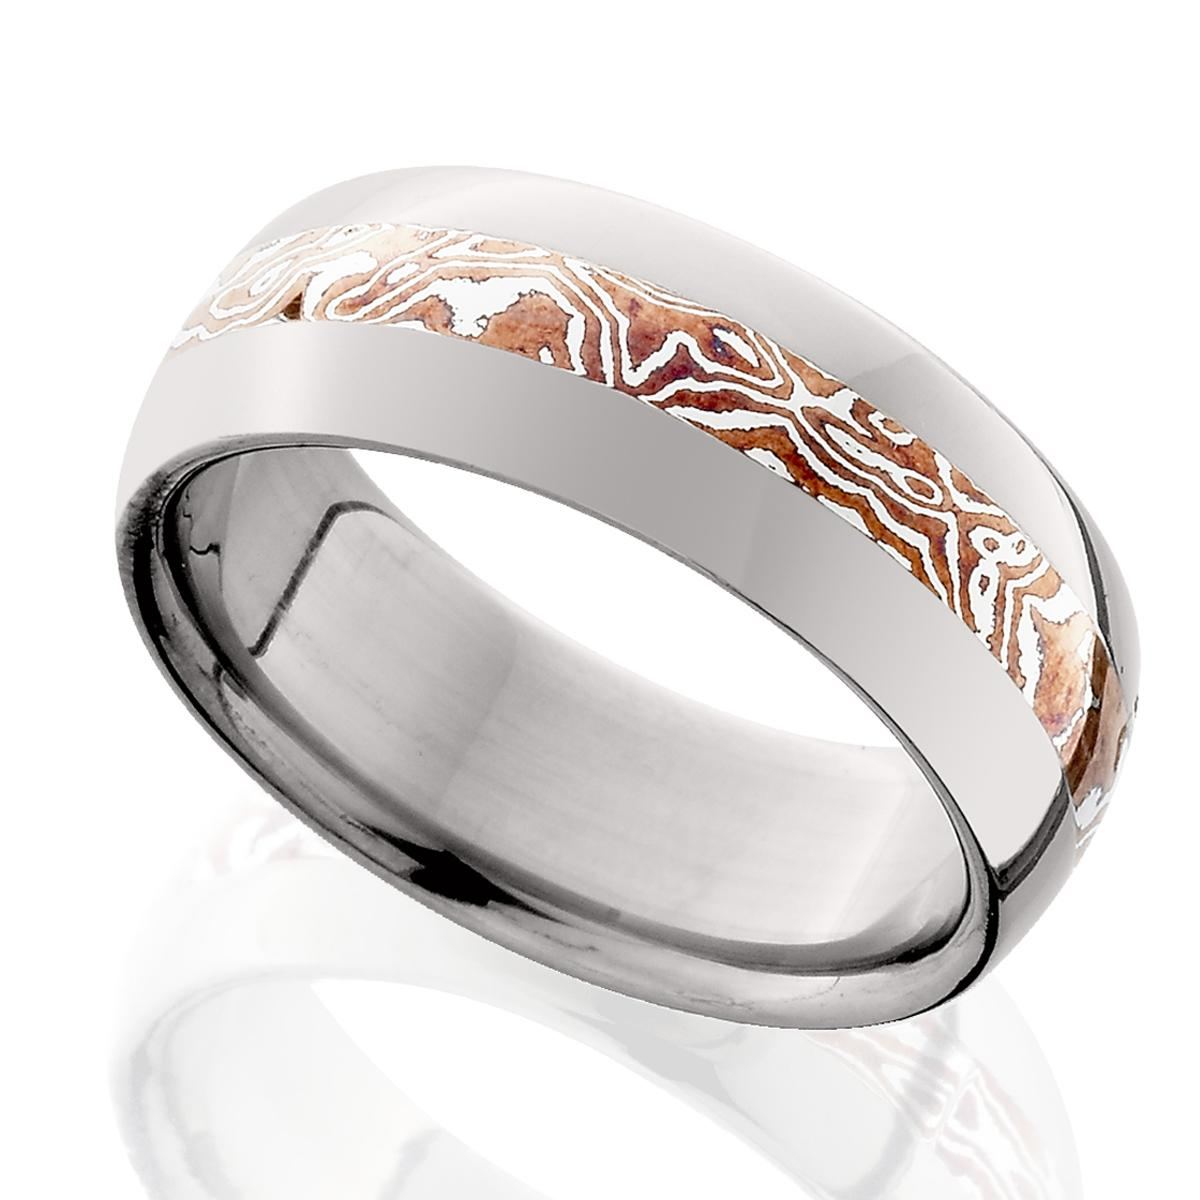 It is just an image of Wedding Rings: Scottish Wedding Rings For Women